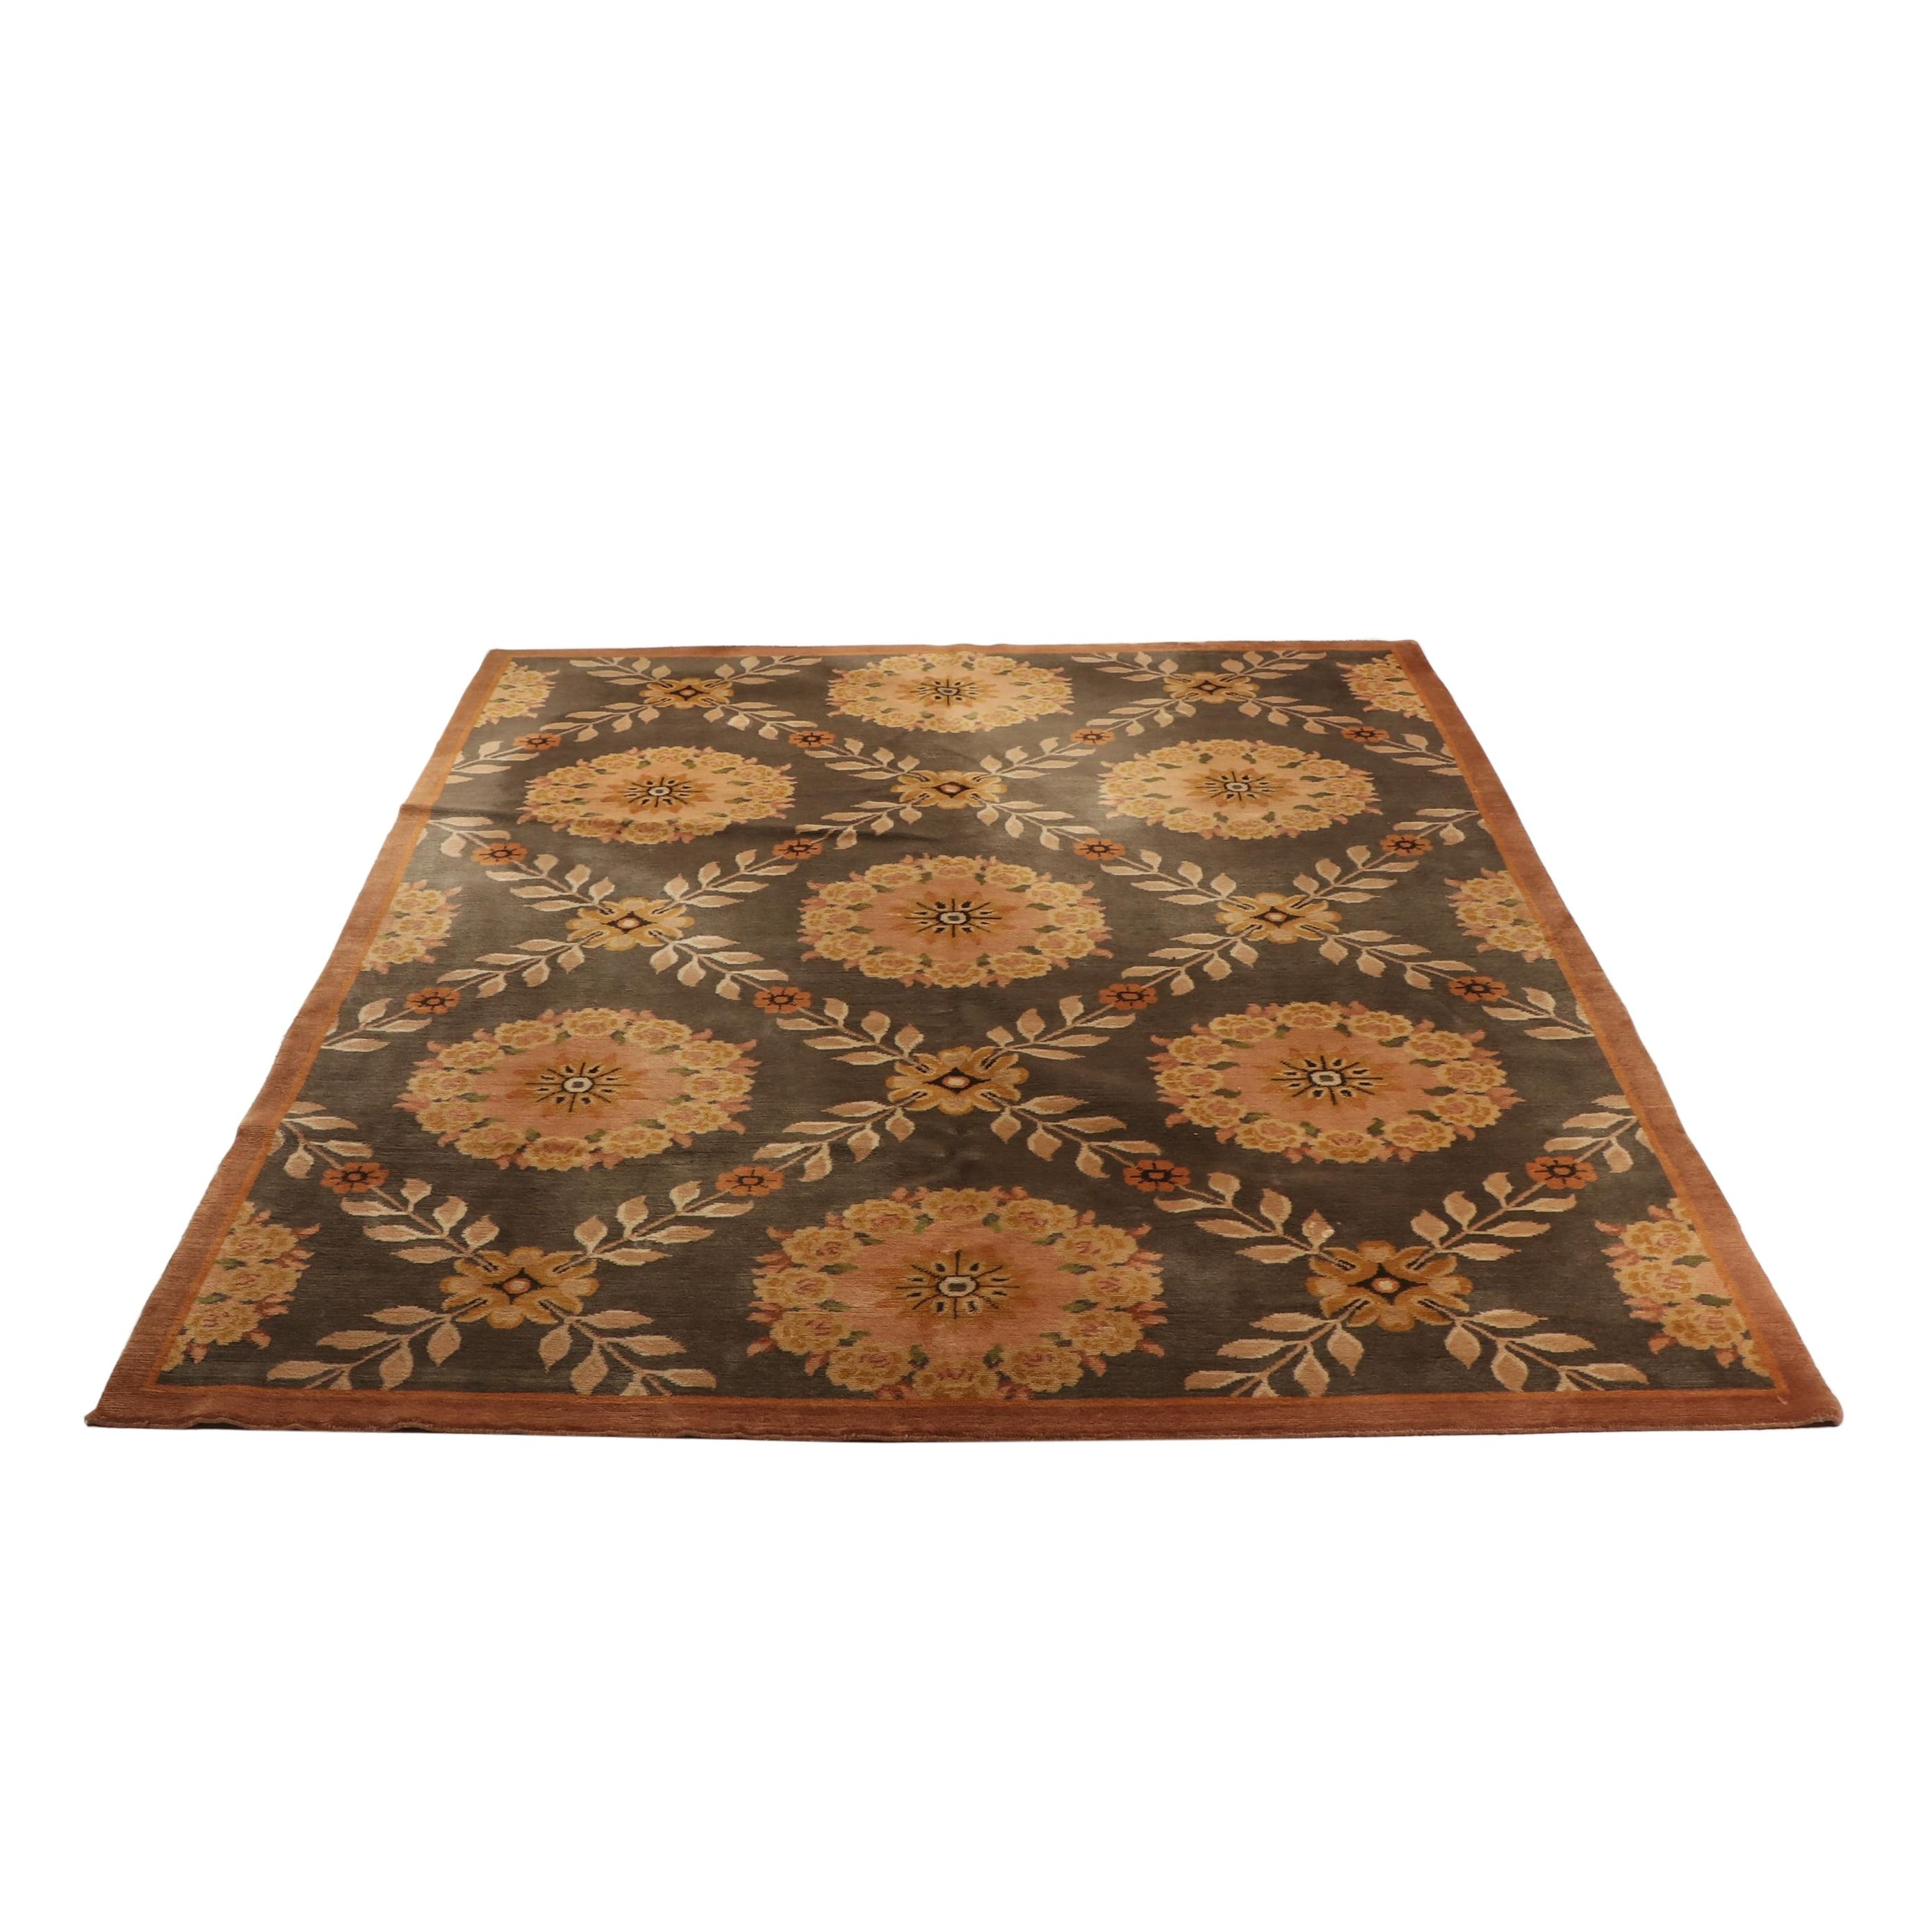 Hand-Knotted Indian Floral Lattice Wool Rug